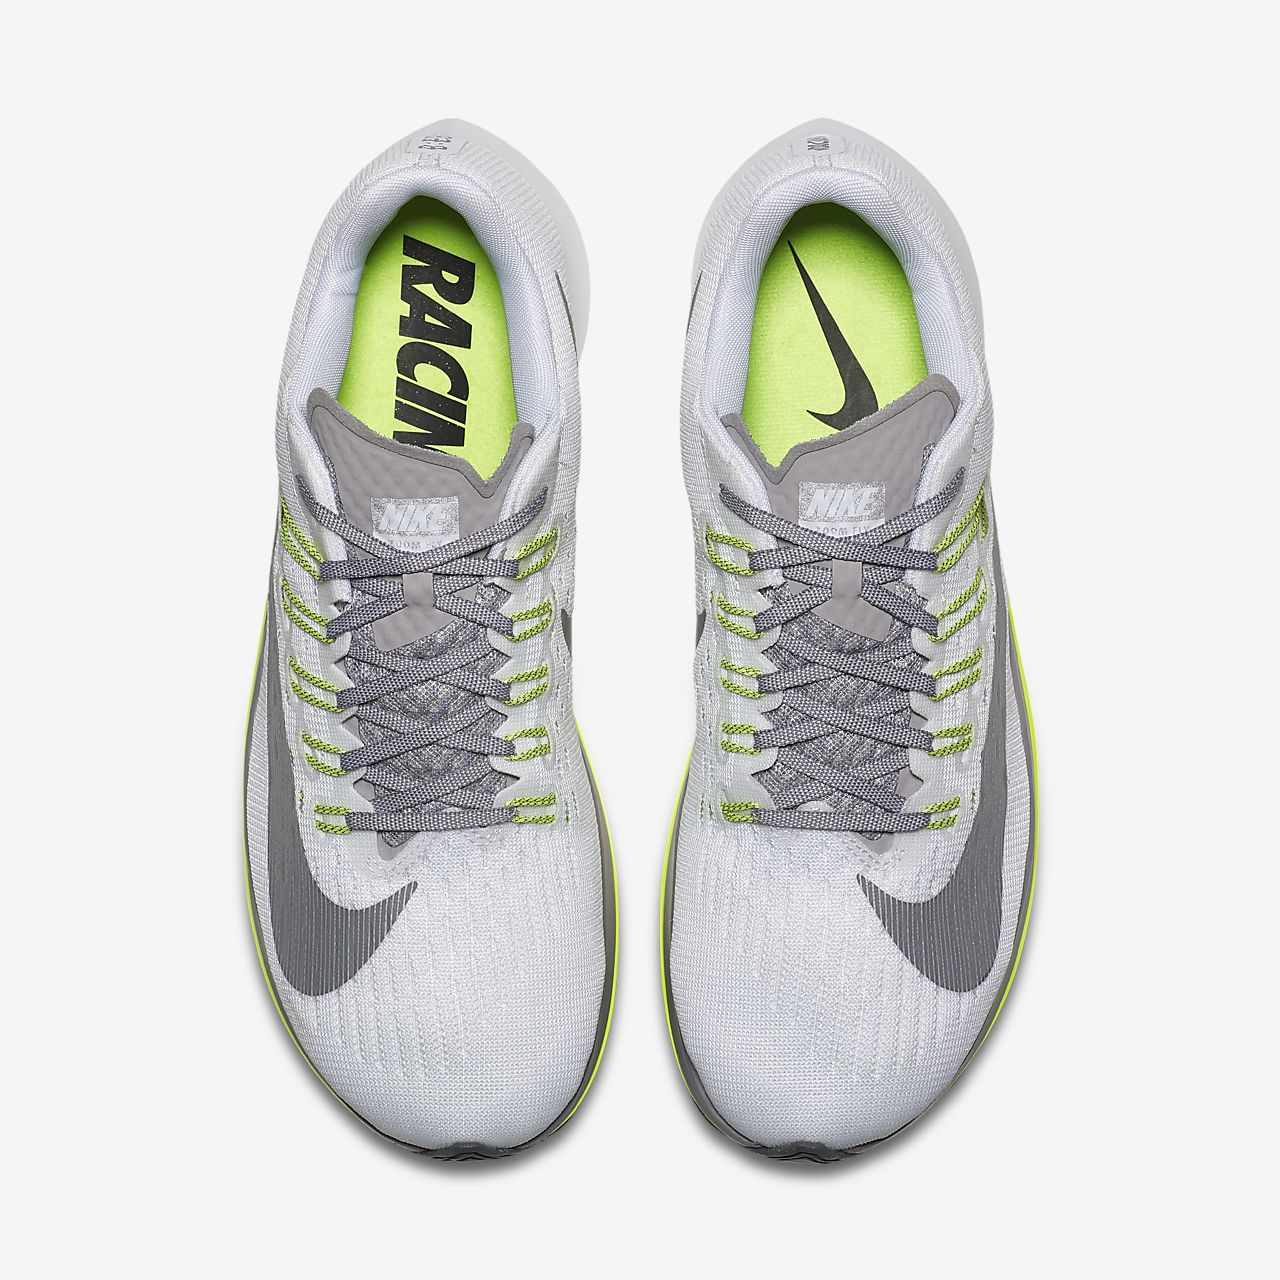 4c51272c439e4 Nike Zoom Fly Men s Running Shoe. Nike.com